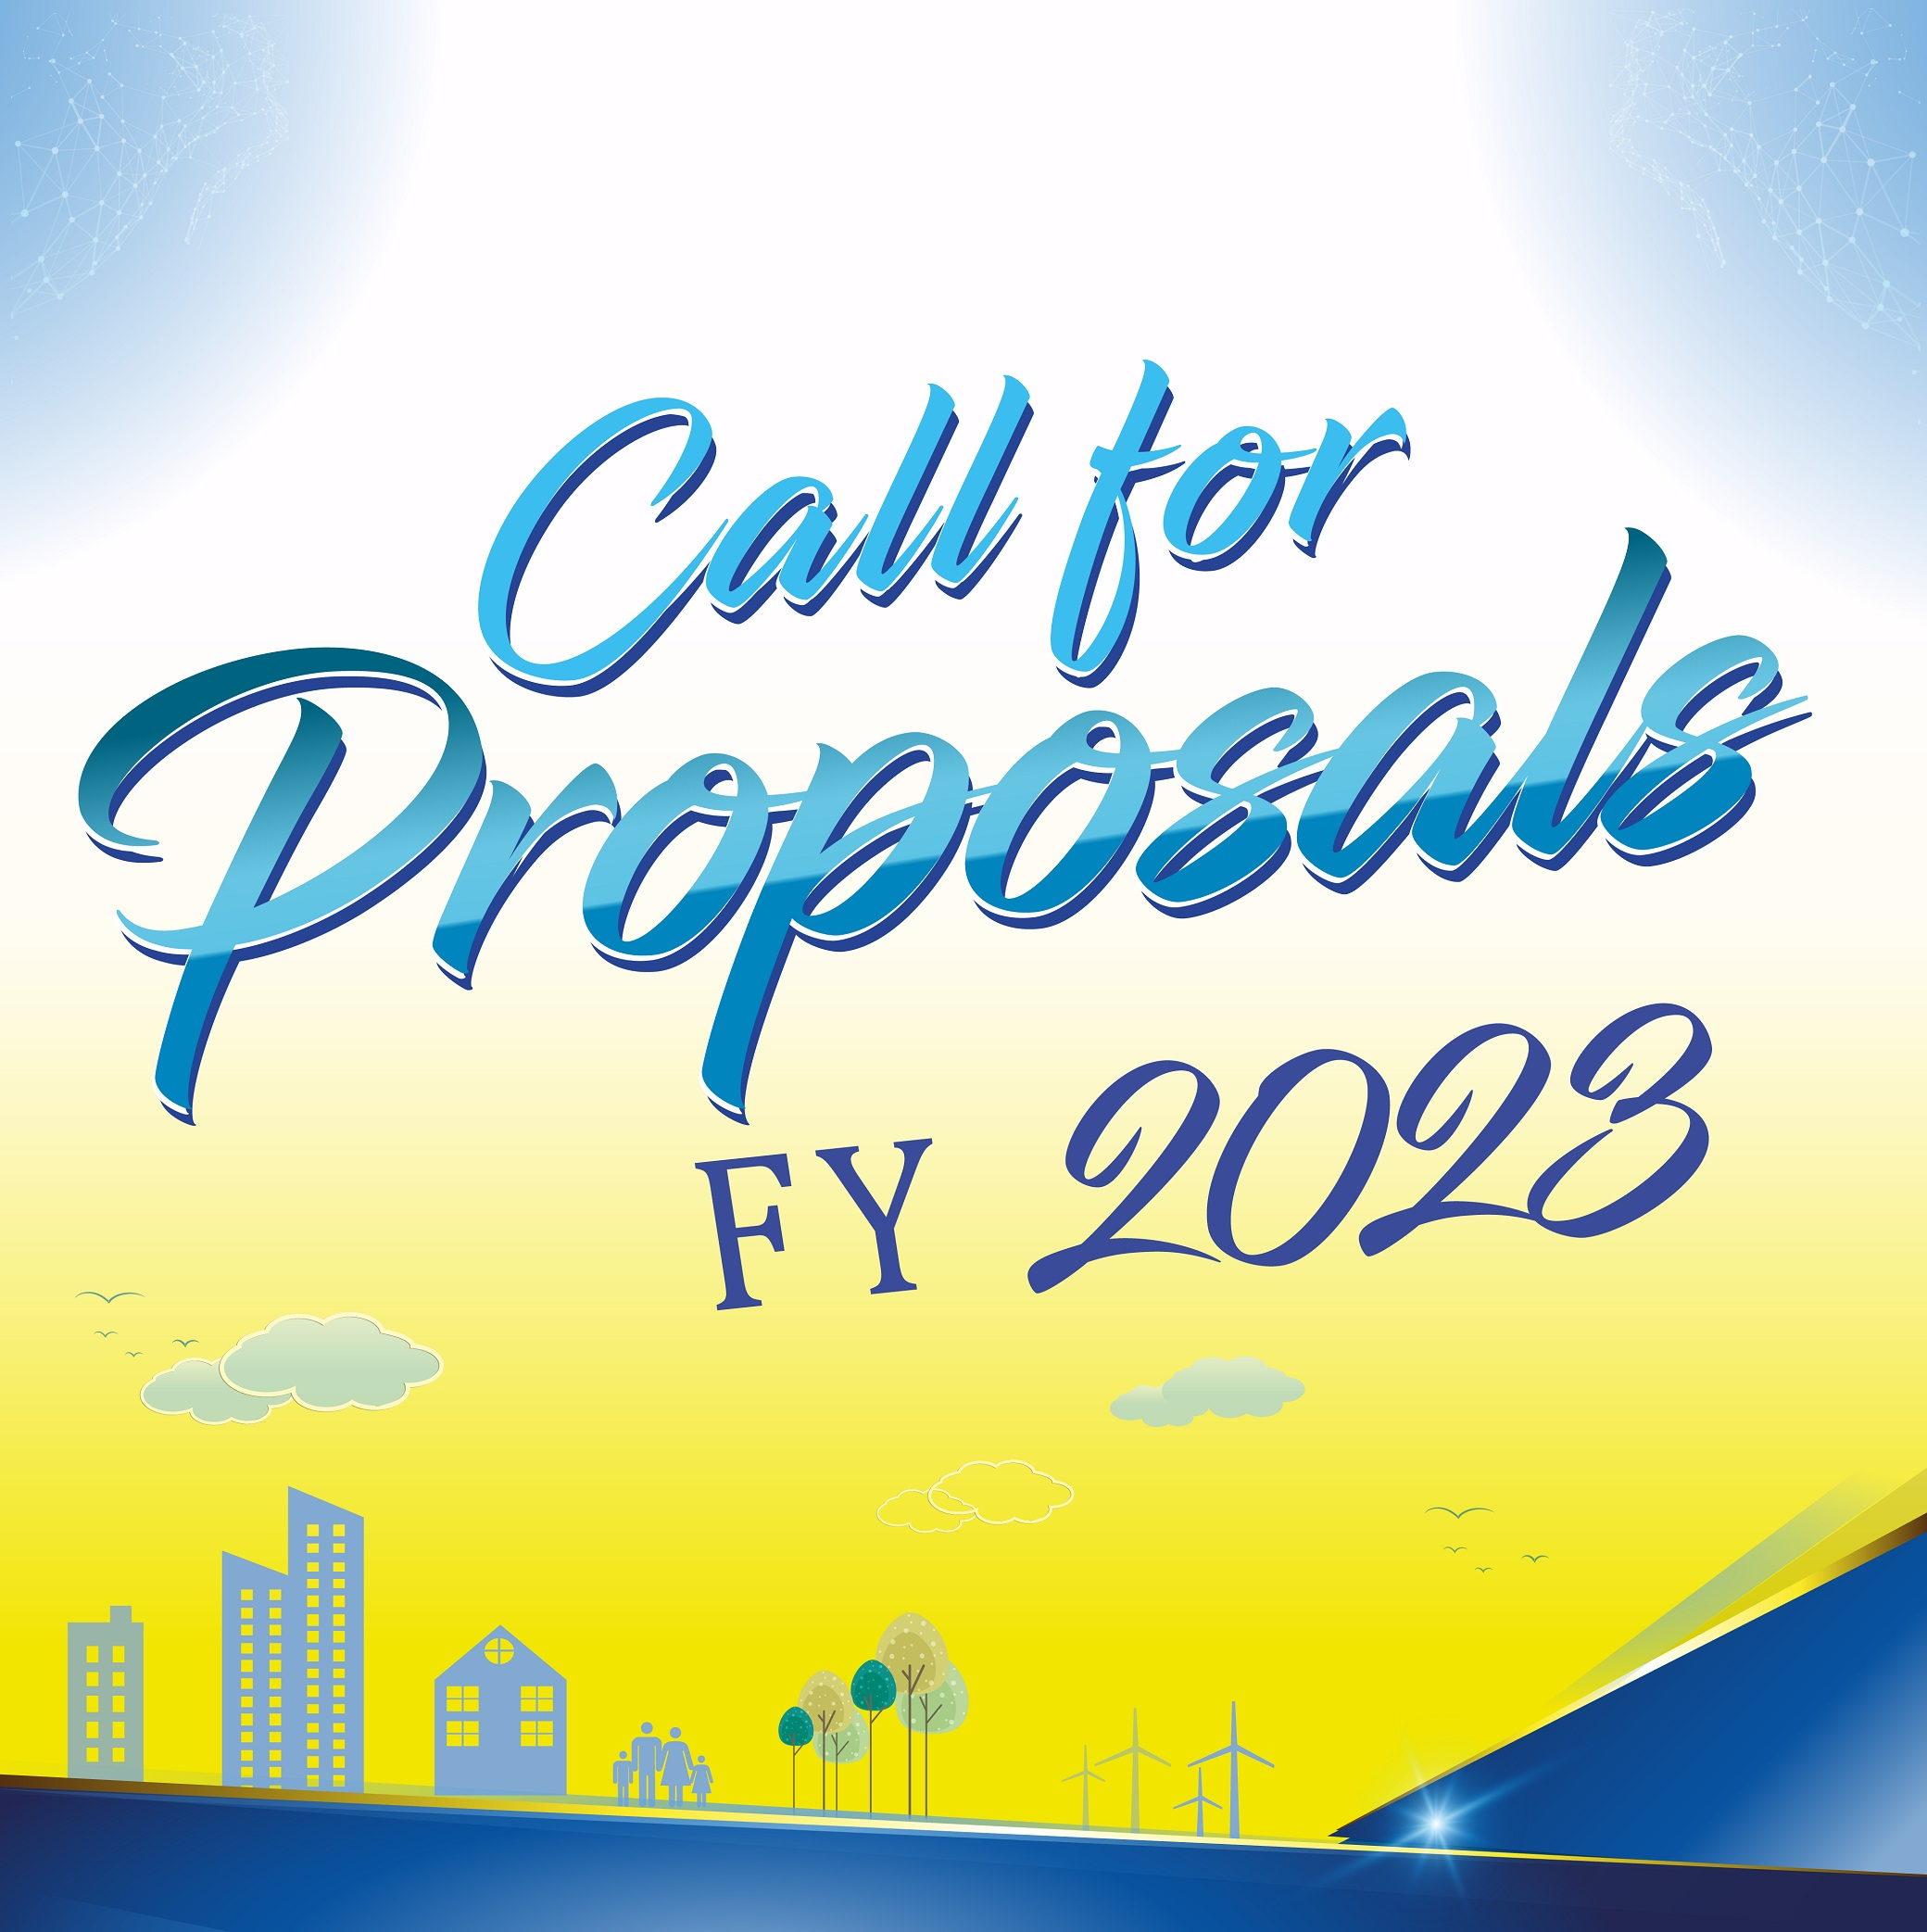 Call for proposal icon